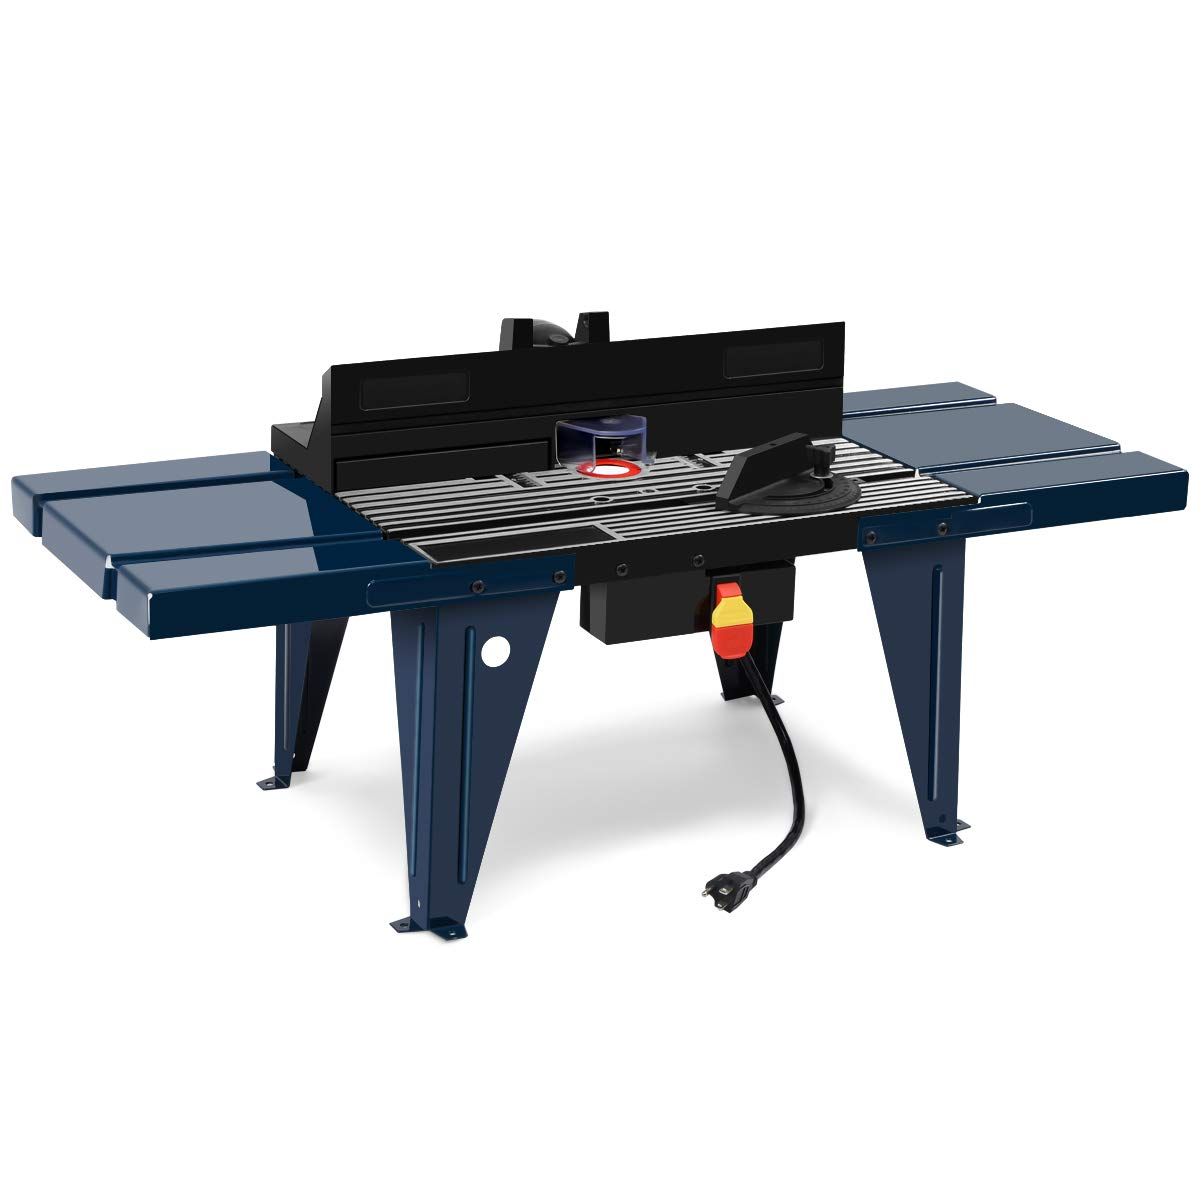 Goplus Electric Aluminum Router Table Wood Working Craftsman Tool Benchtop by Goplus